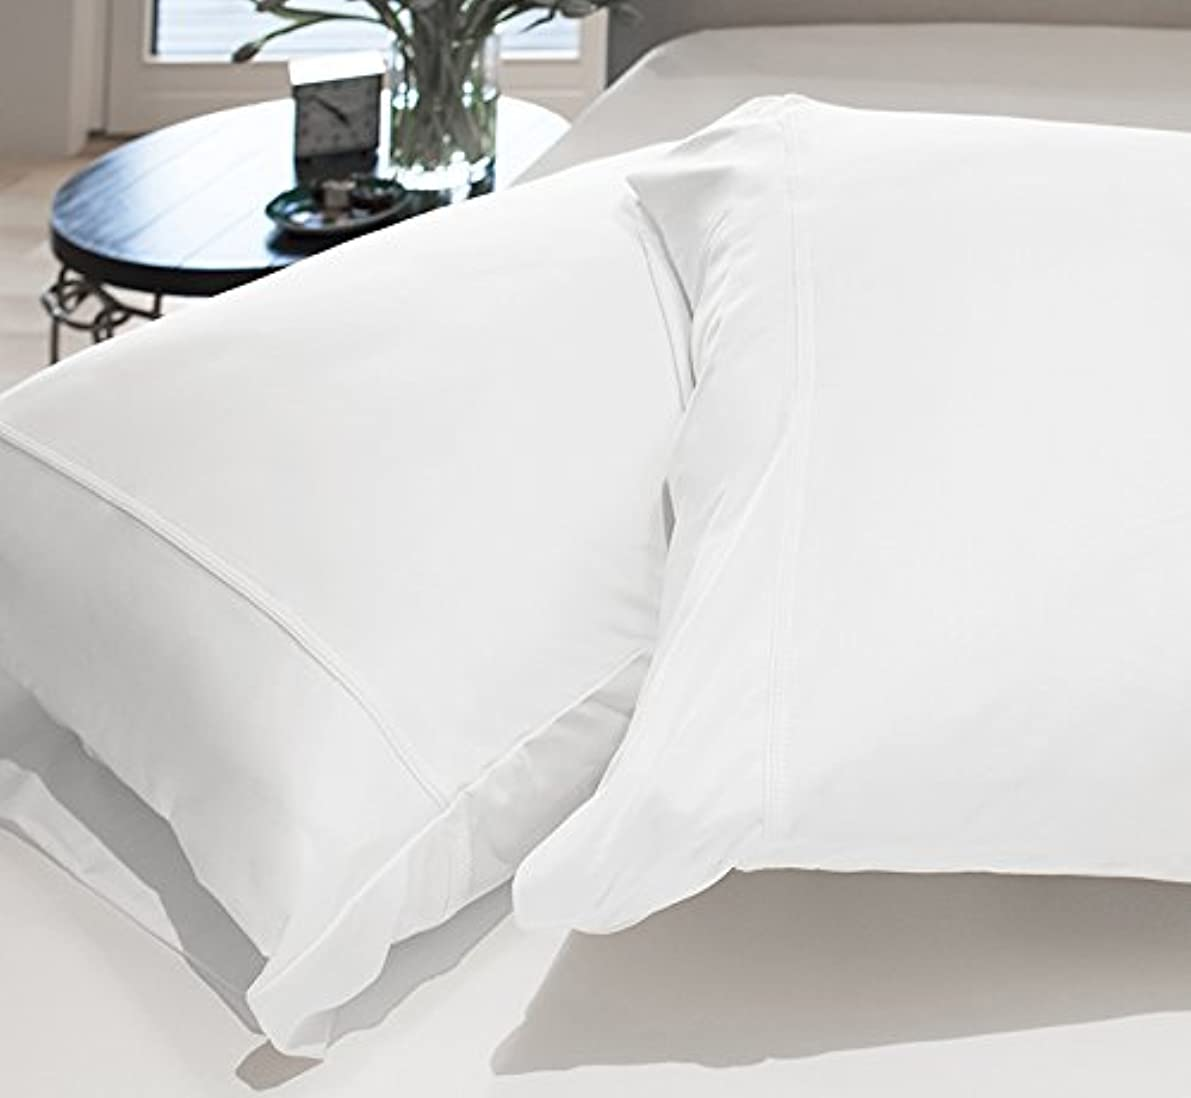 SHEEX Original Performance Pillowcases (Set of 2), Ultra-Soft Fabric Transfers Body Heat and Breathes Better Than Traditional Cotton, Bright White (Standard)